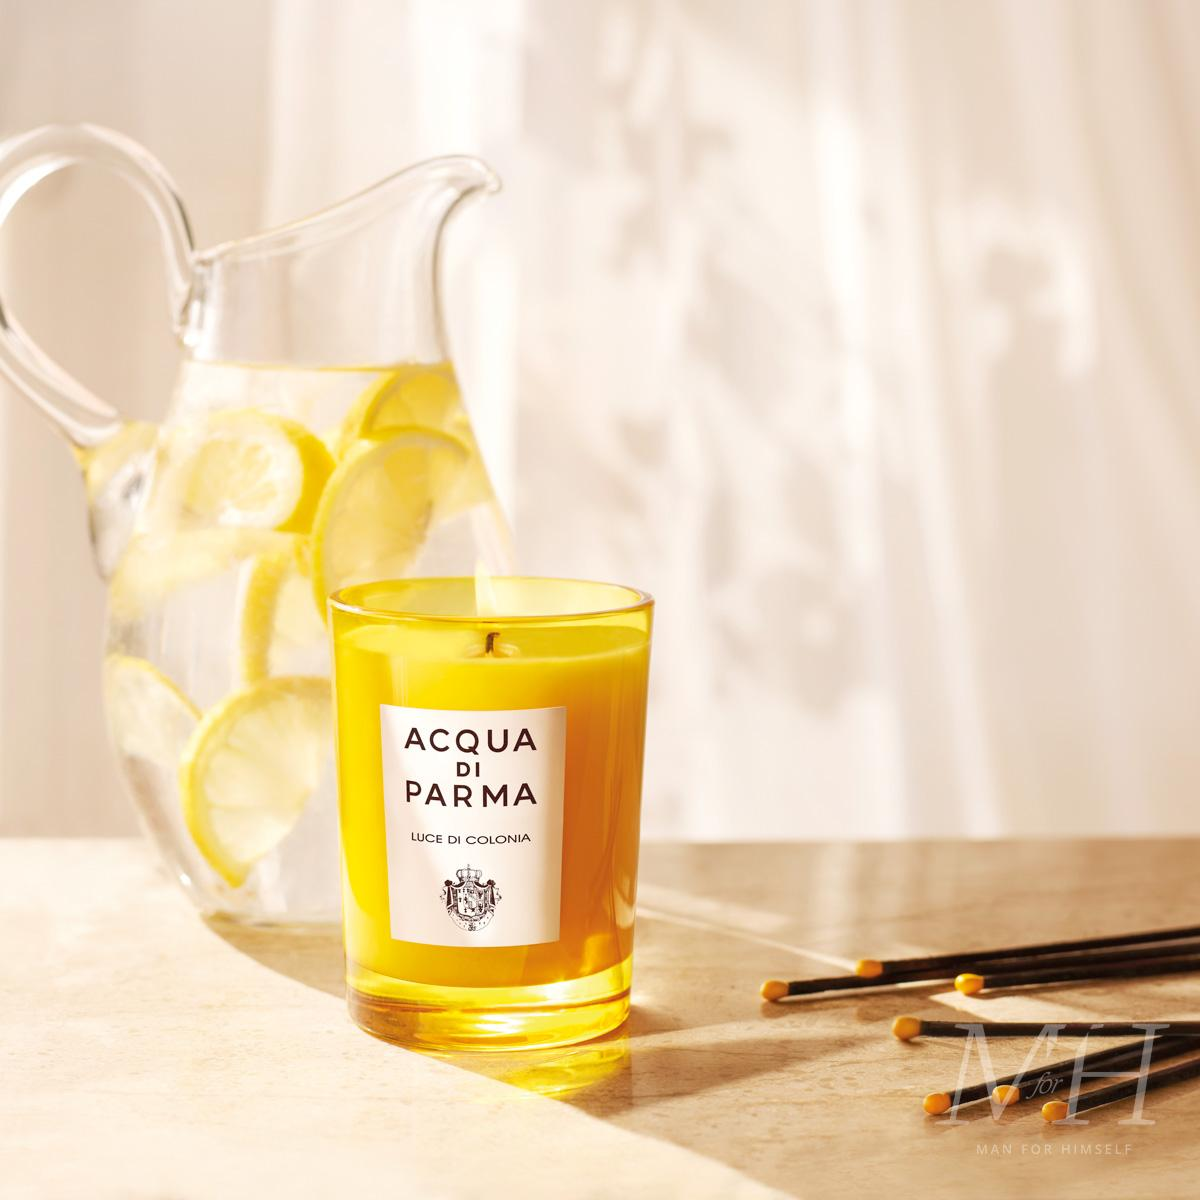 acqua-di-parma-candle-home-collection-man-for-himelf